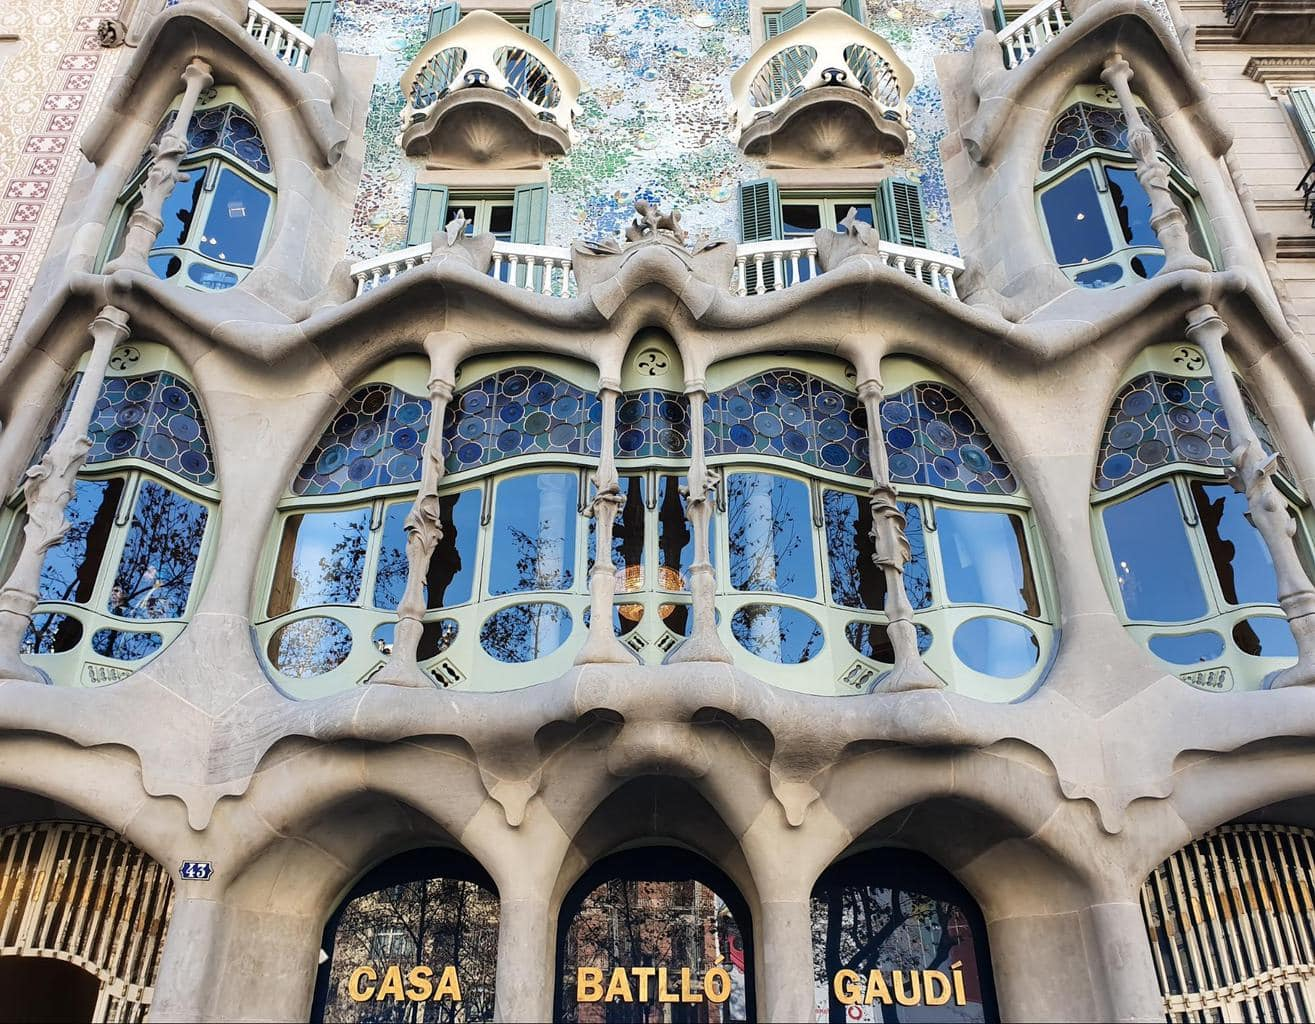 The facade of Casa Batllo